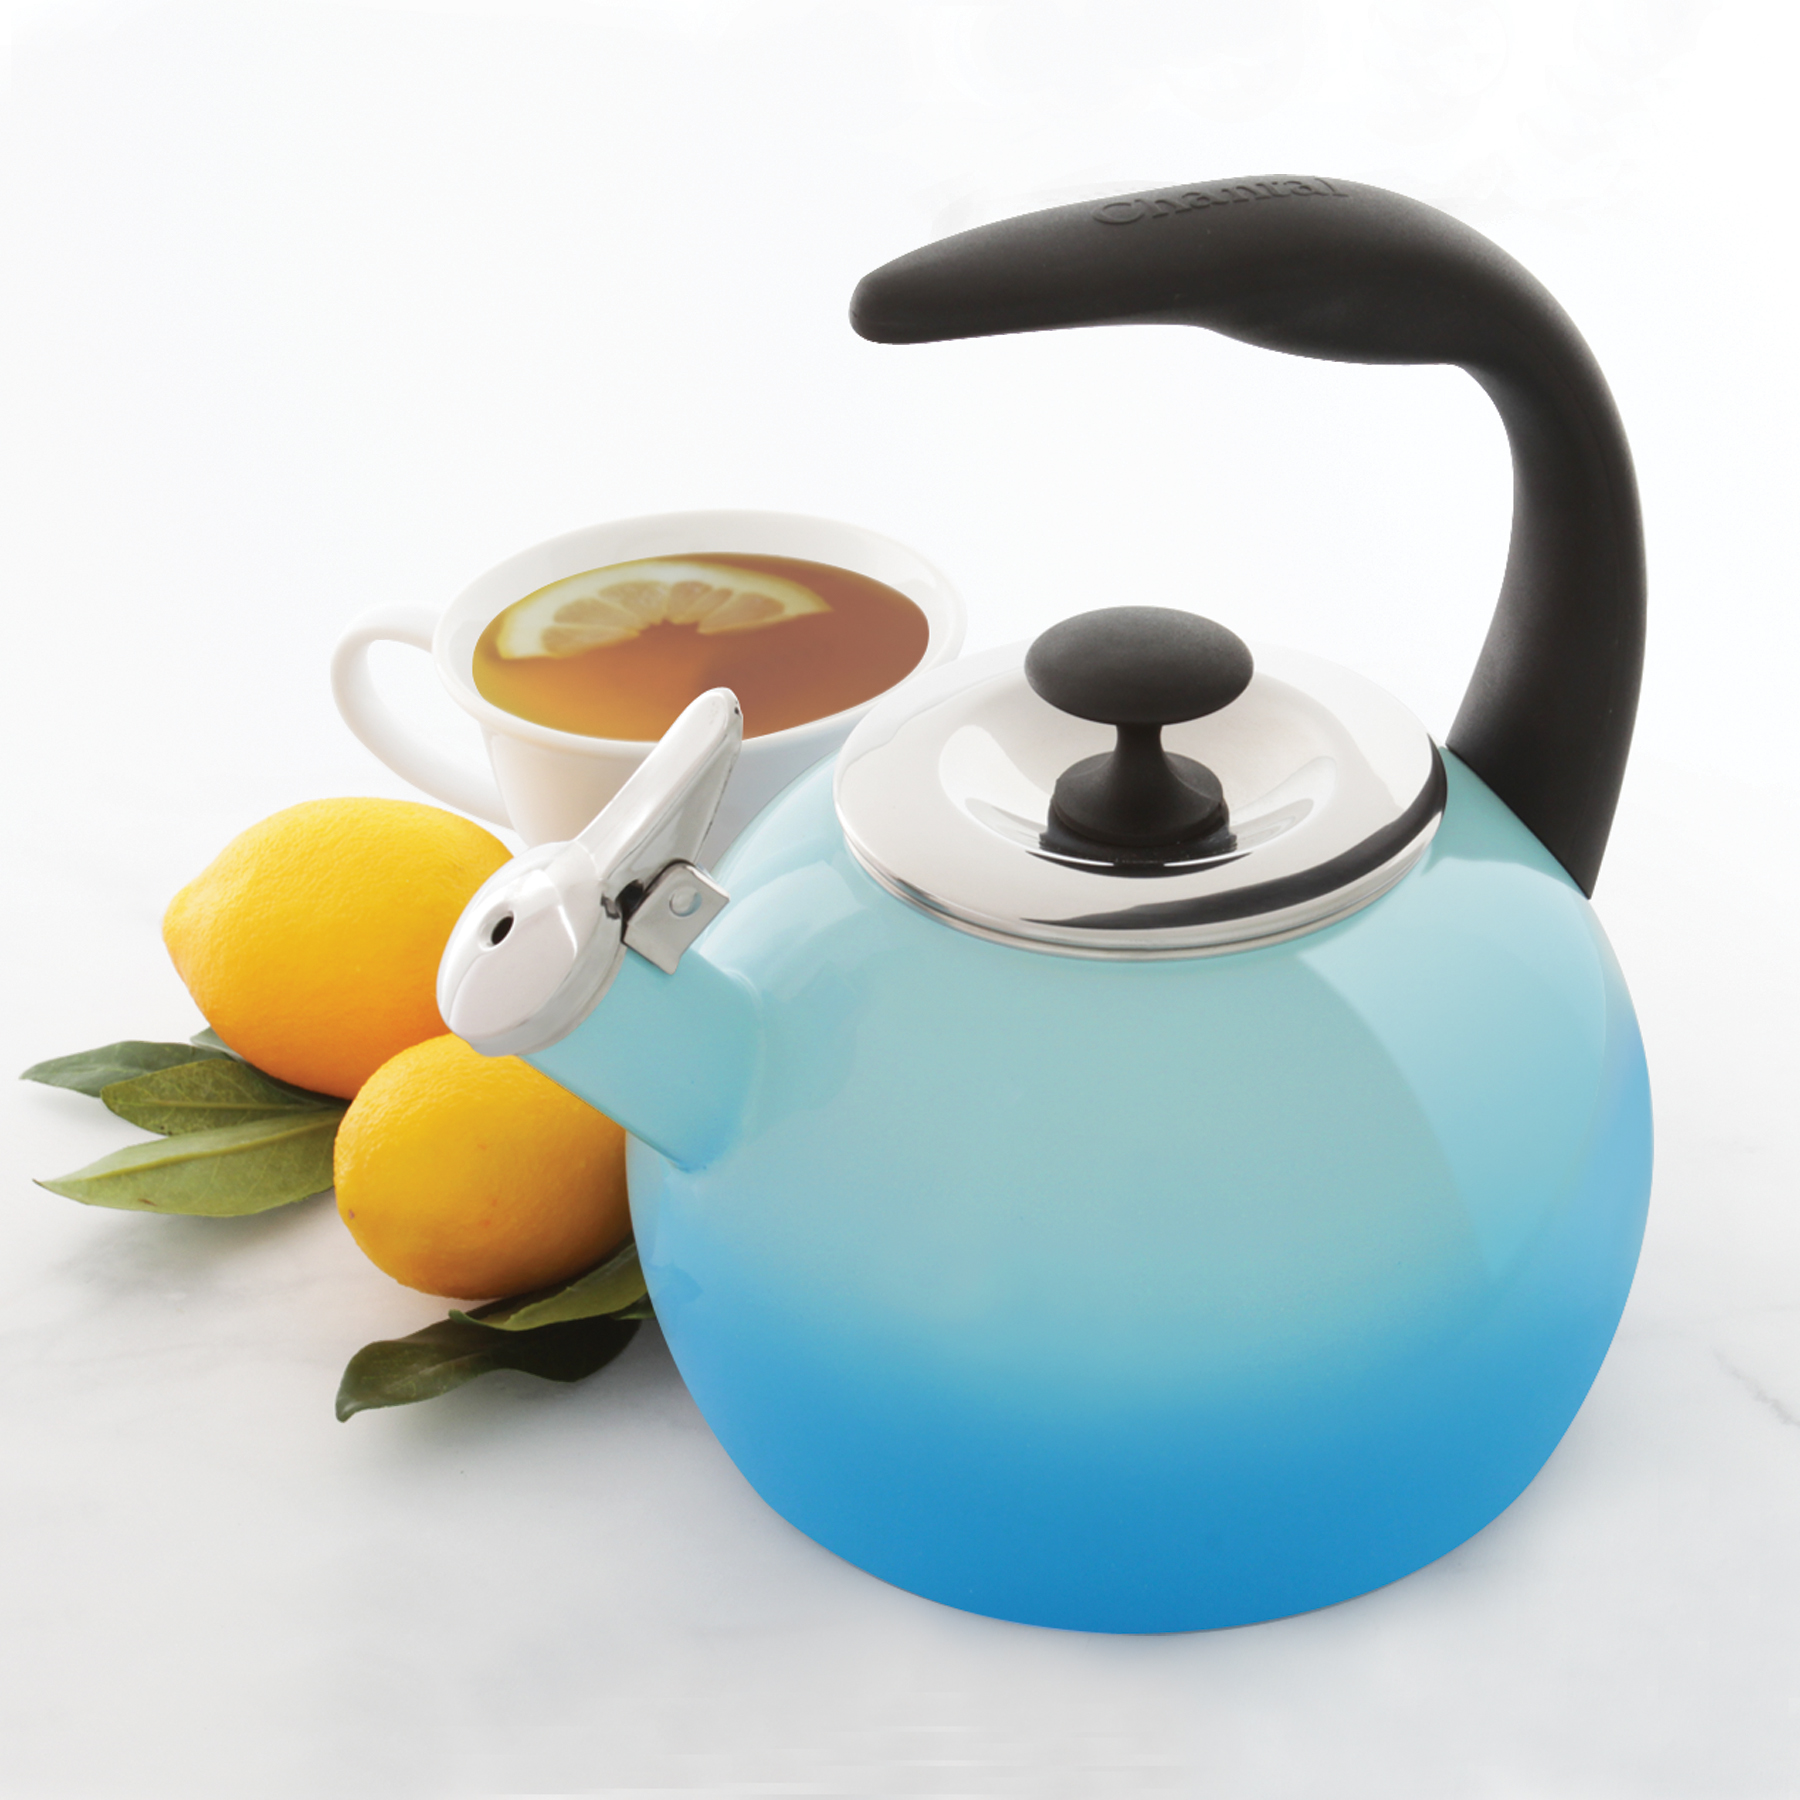 Chantal 2-Qt Heath Enamel-on-Steel Whistling Teakettle